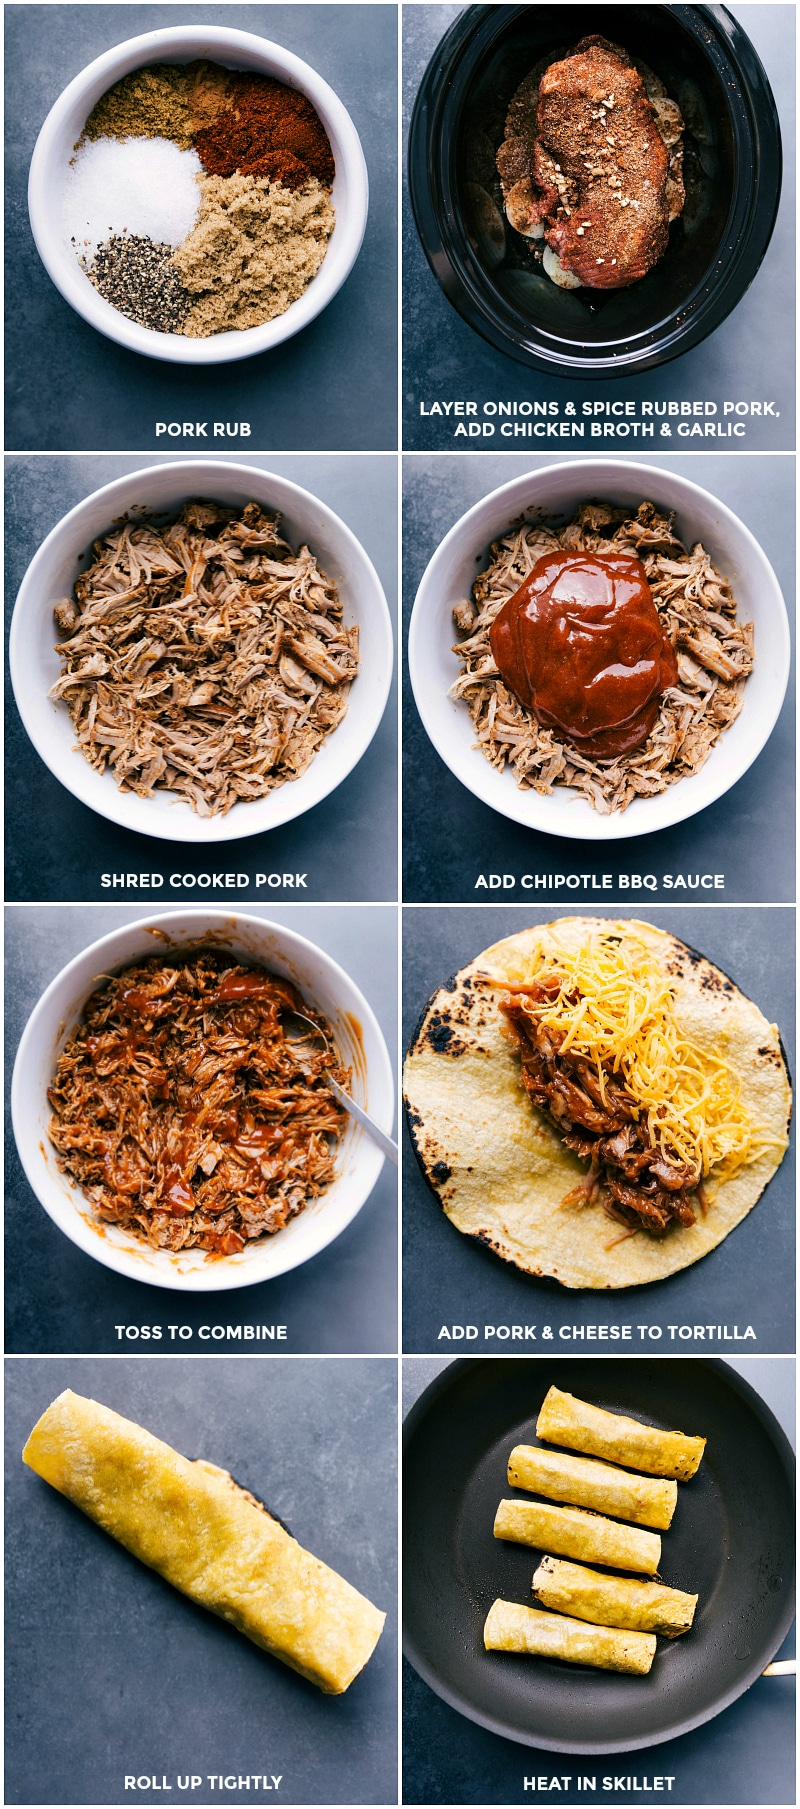 Process shots-- images of the pork being prepped in the slow cooker; then being cooked; and shredded; BBQ sauce being added; then the pork being added to a tortilla with cheese; rolled up; and fried in a skillet.